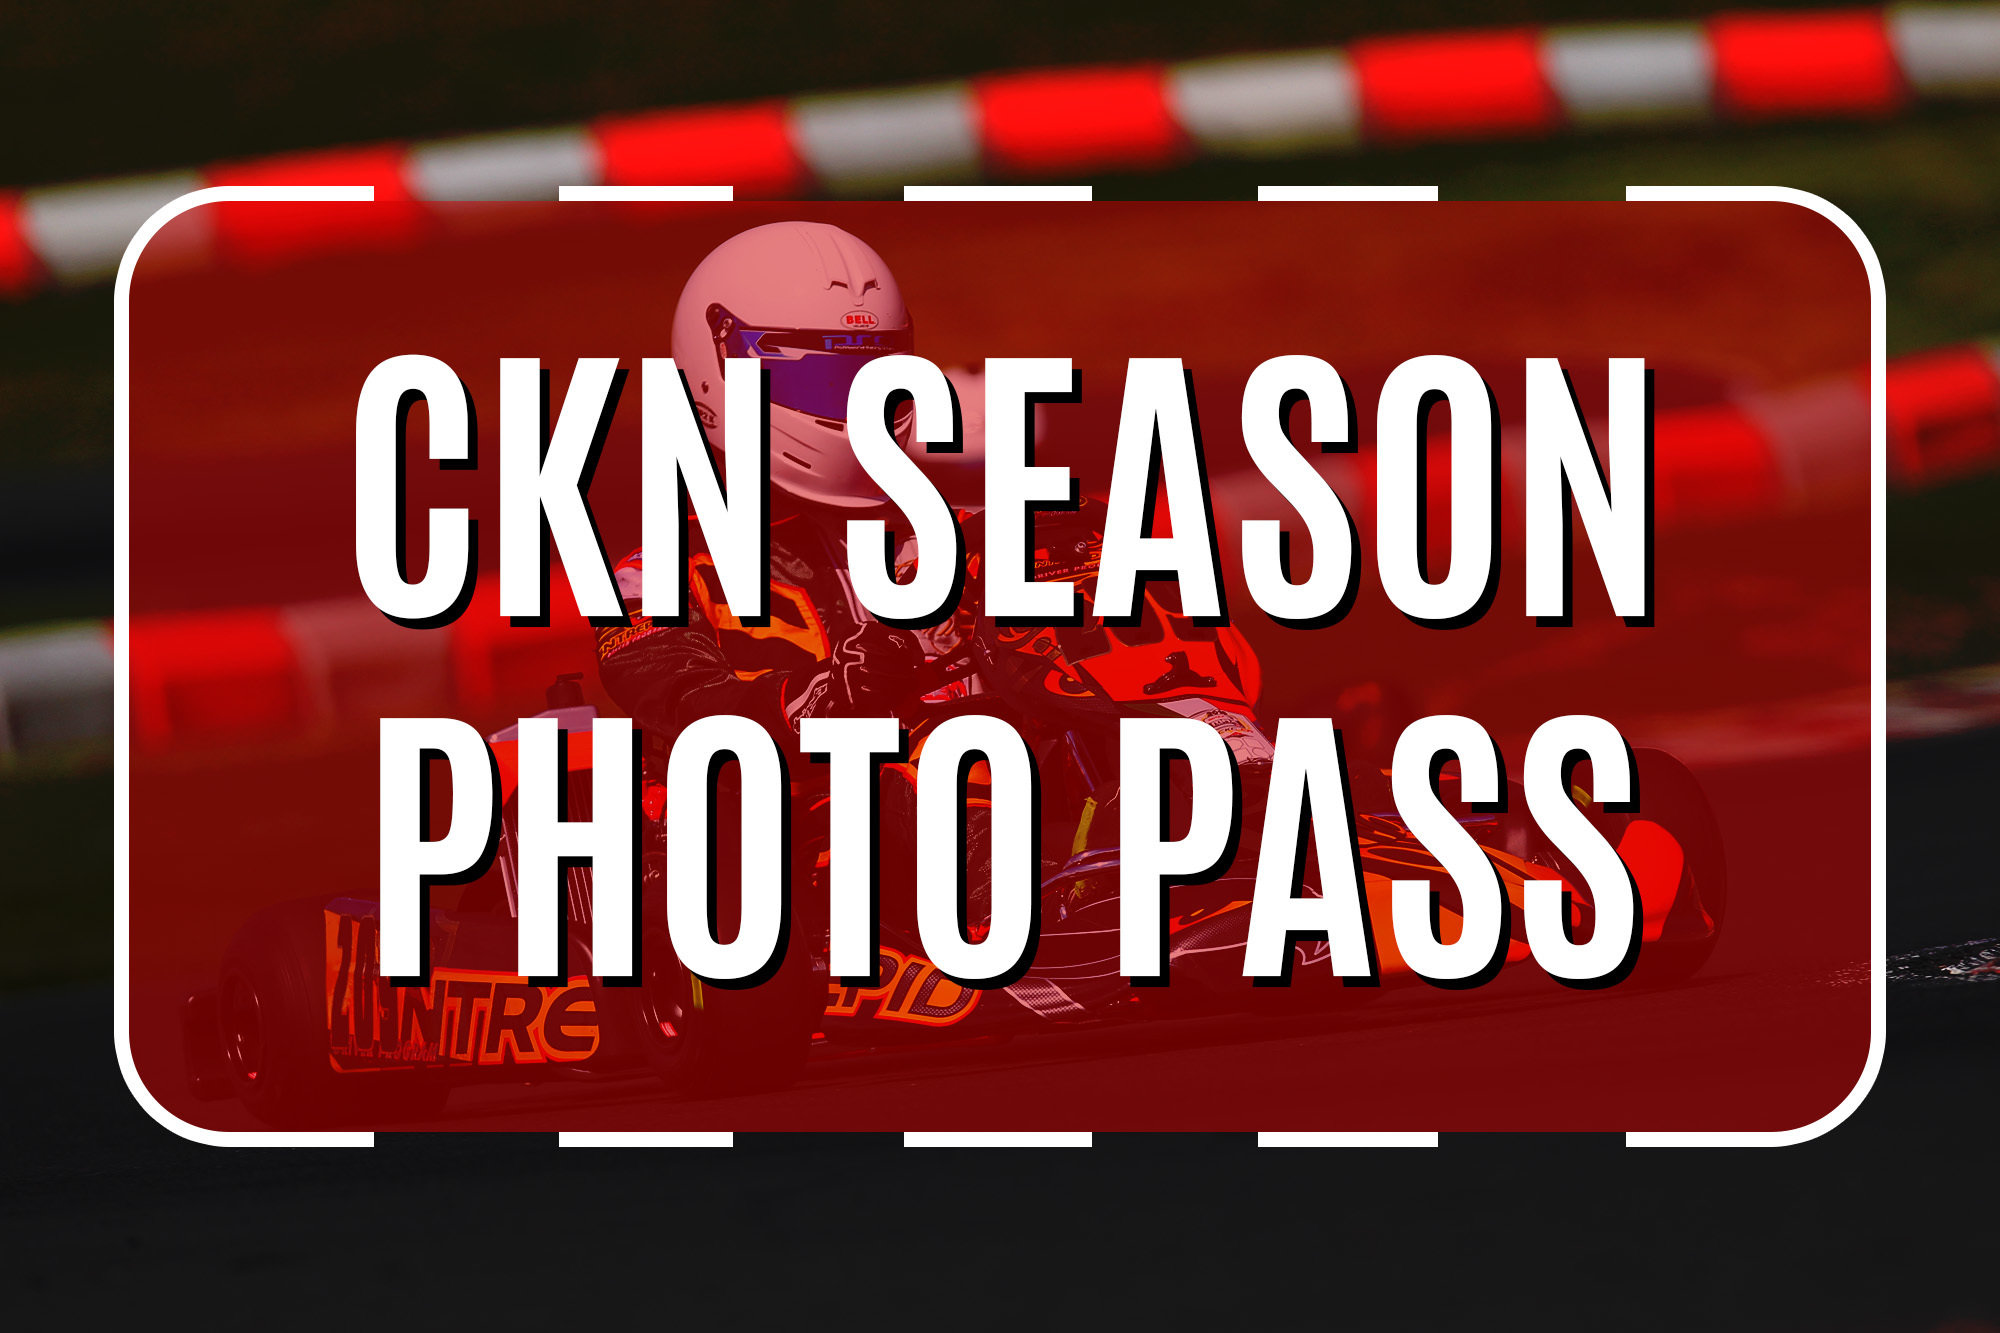 2018 CKN Season Photo Pass 00004